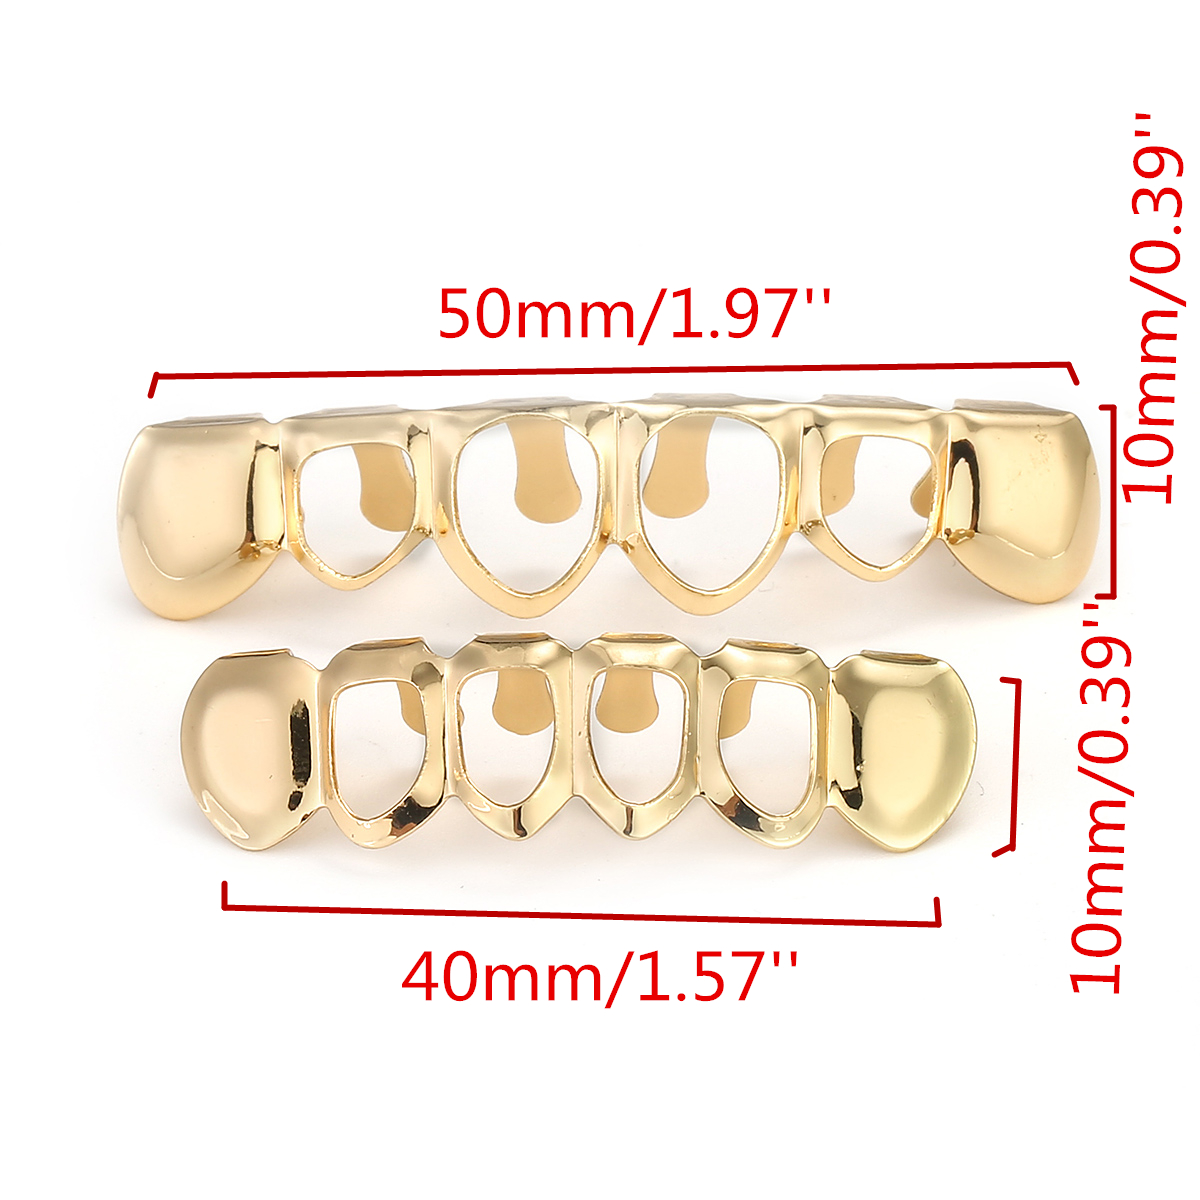 Gold Plated Open Face Fangs Teeth Top&Bottom Mouth Grillz Caps